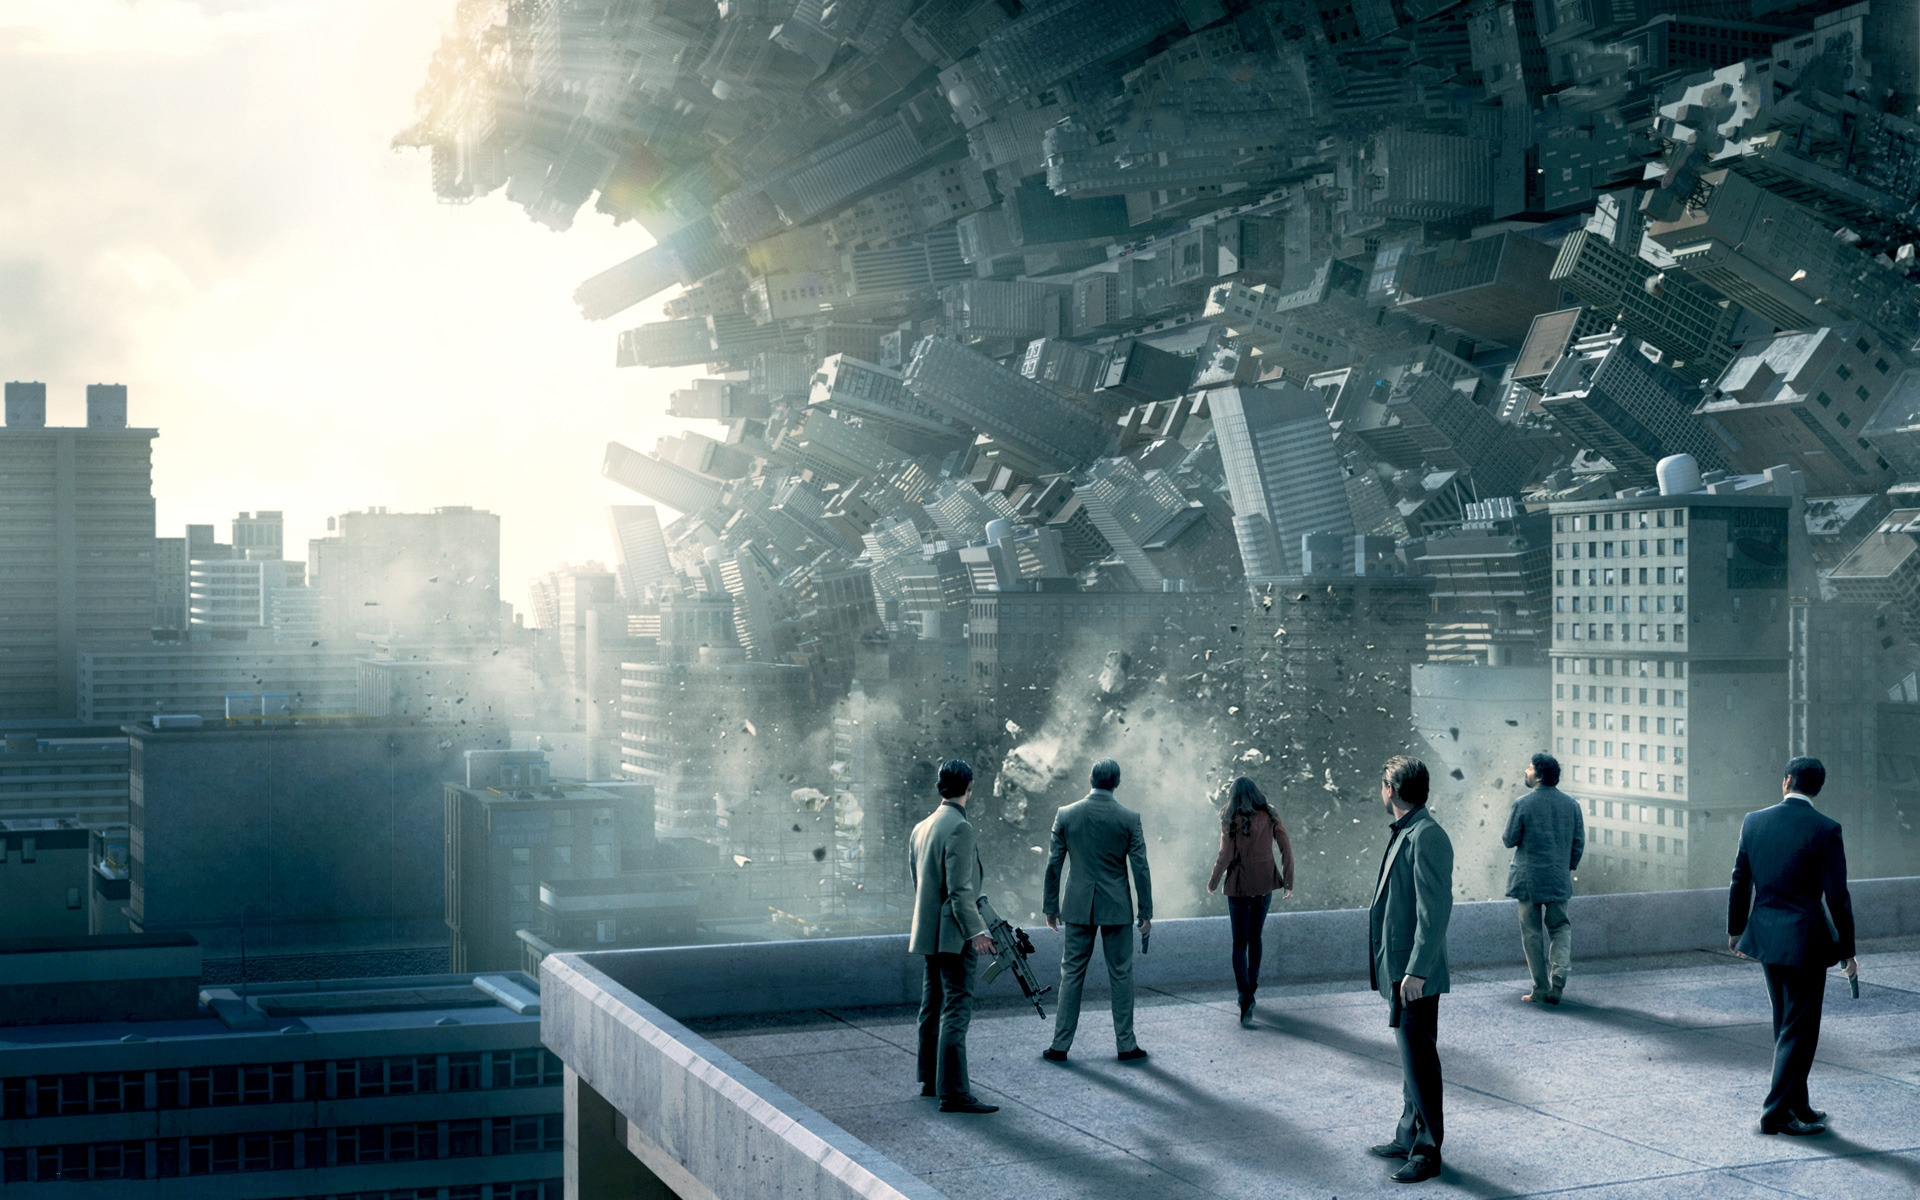 Inception (2010) Directed by Christopher Nolan - Image 3